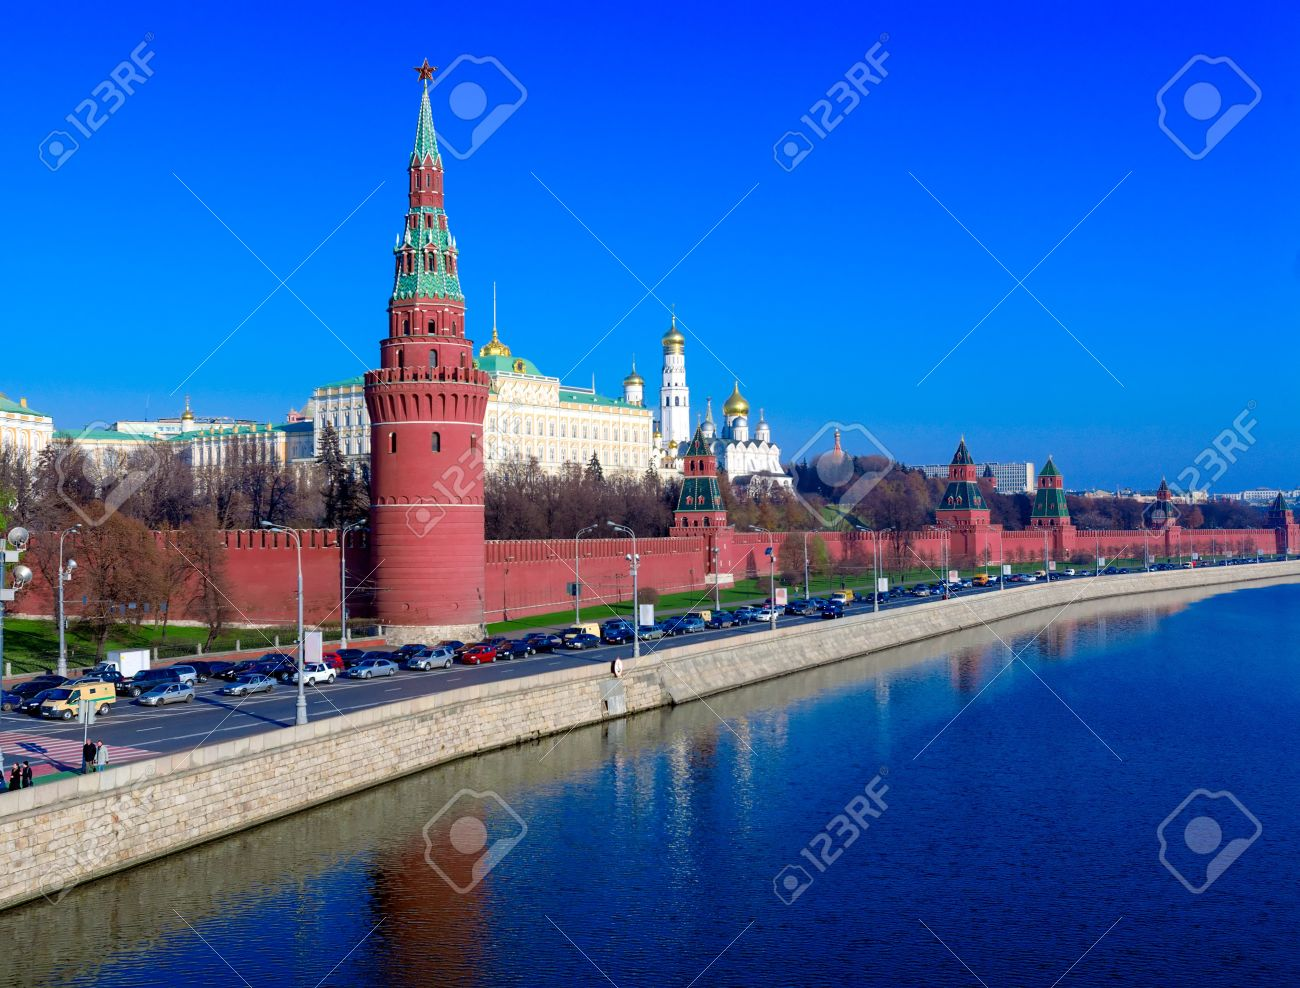 Landscape of Moscow Kremlin with Palace and Cathedrals near Moskva River, Russia Stock Photo - 15840455